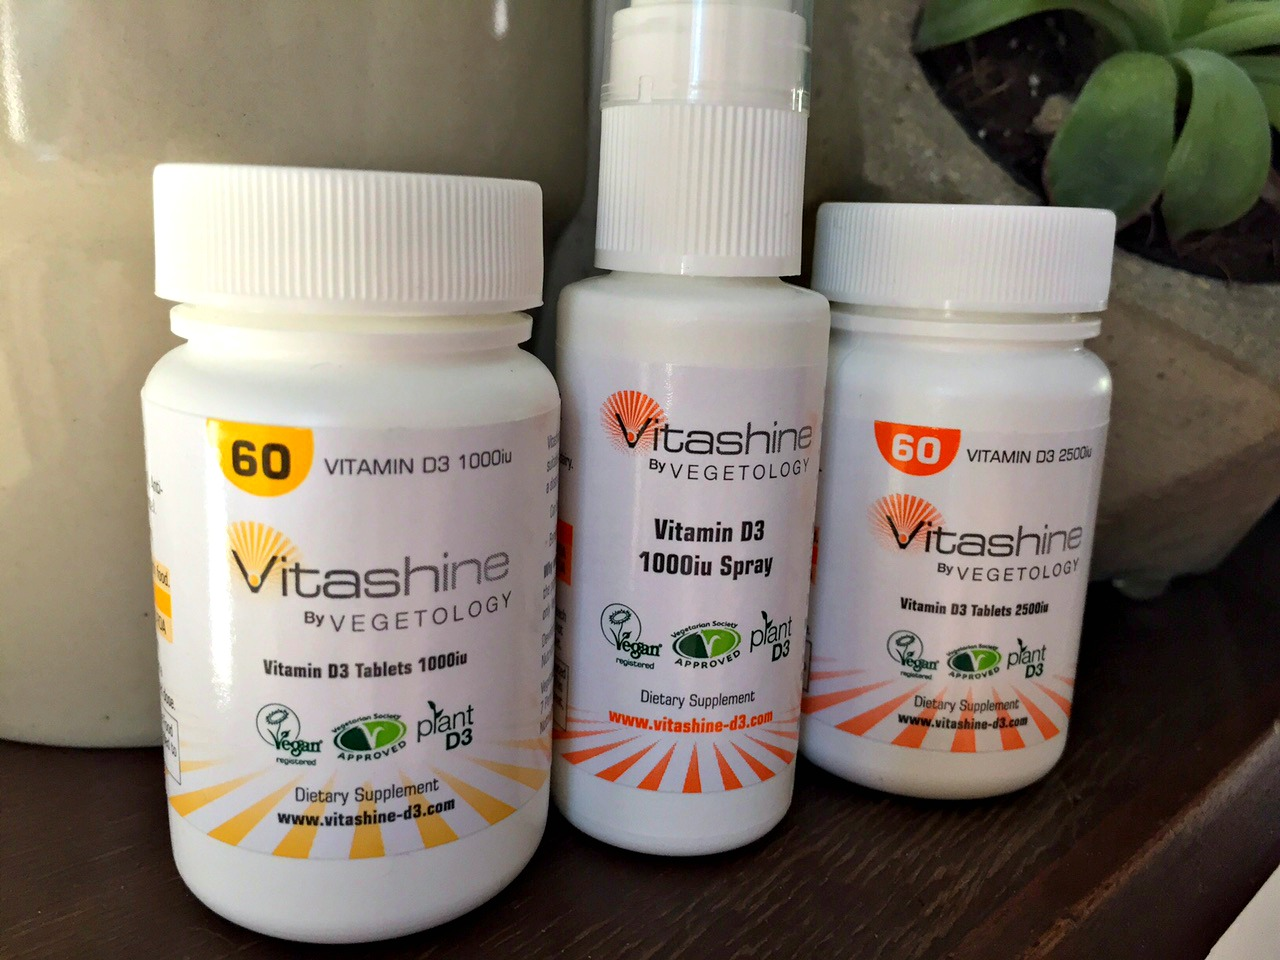 Vitashine Vitamin D3 by Vegetology